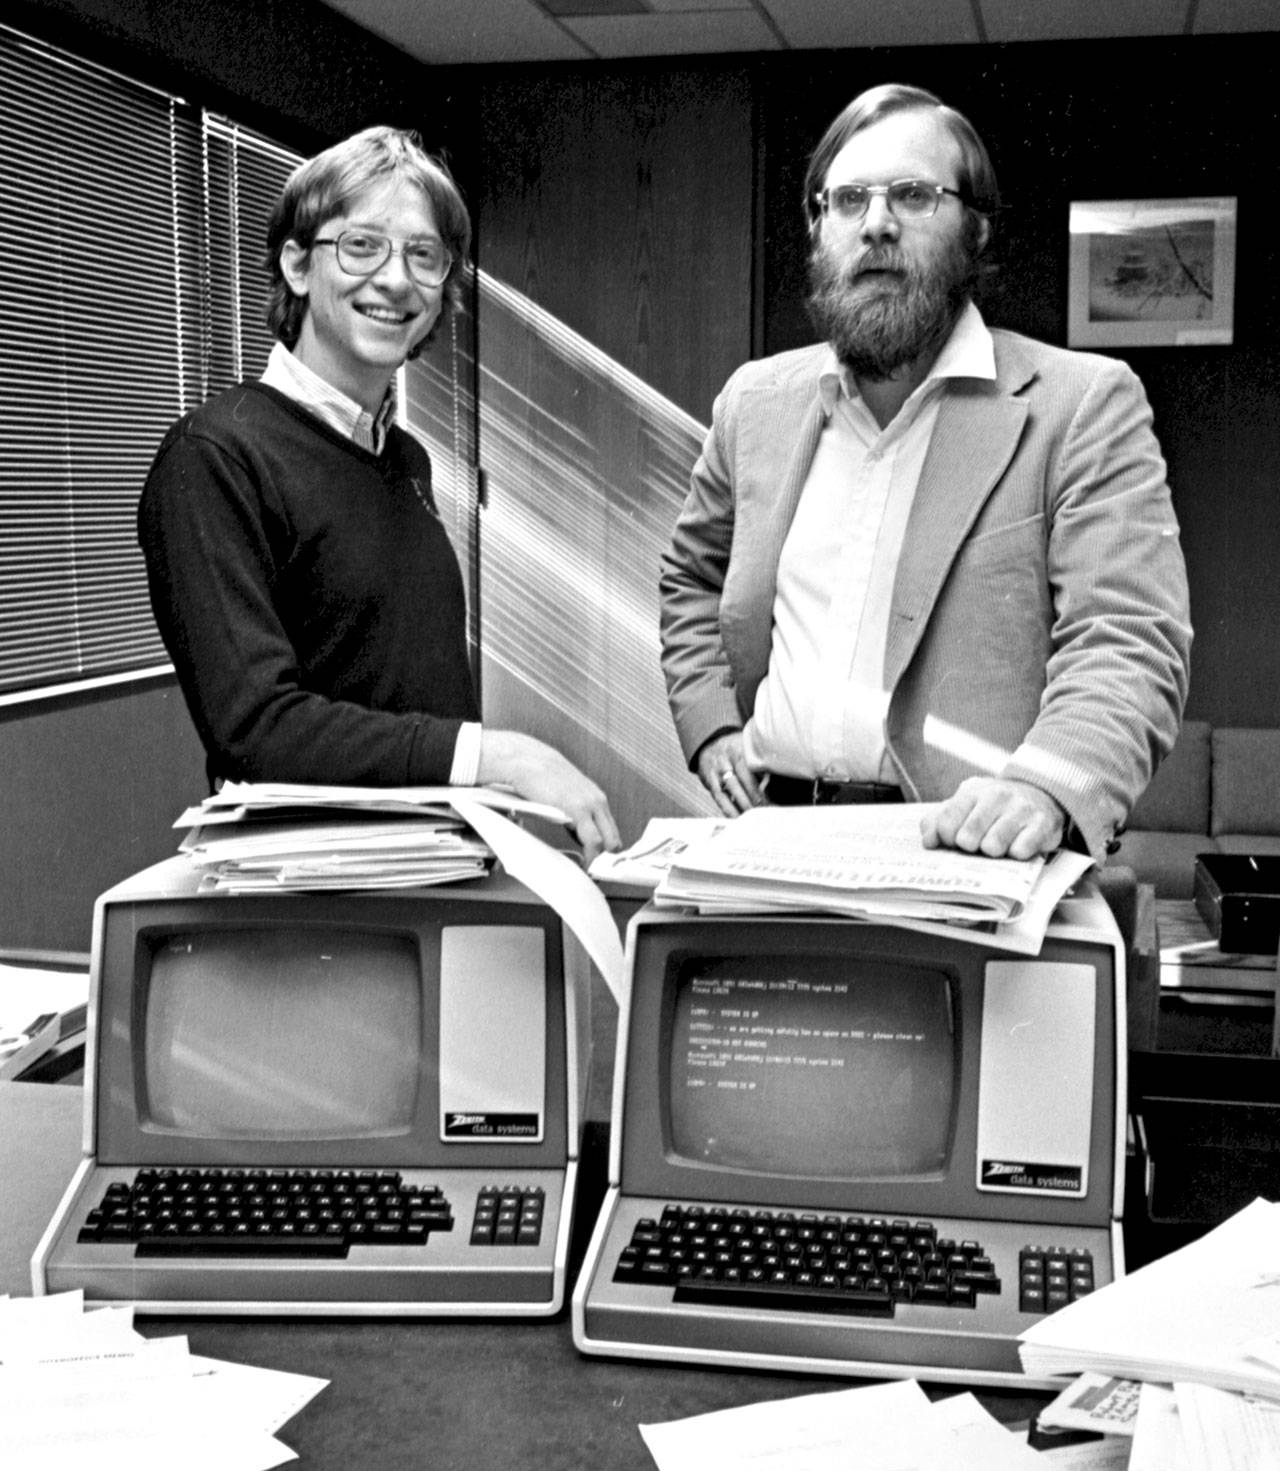 Bill Gates and Paul Allen relocated Microsoft to Bellevue, Washington, from Albuquerque in 1979. Allen died of non-Hodgkin lymphoma at age 65 on Monday. (Barry Wong/Seattle Times/TNS)